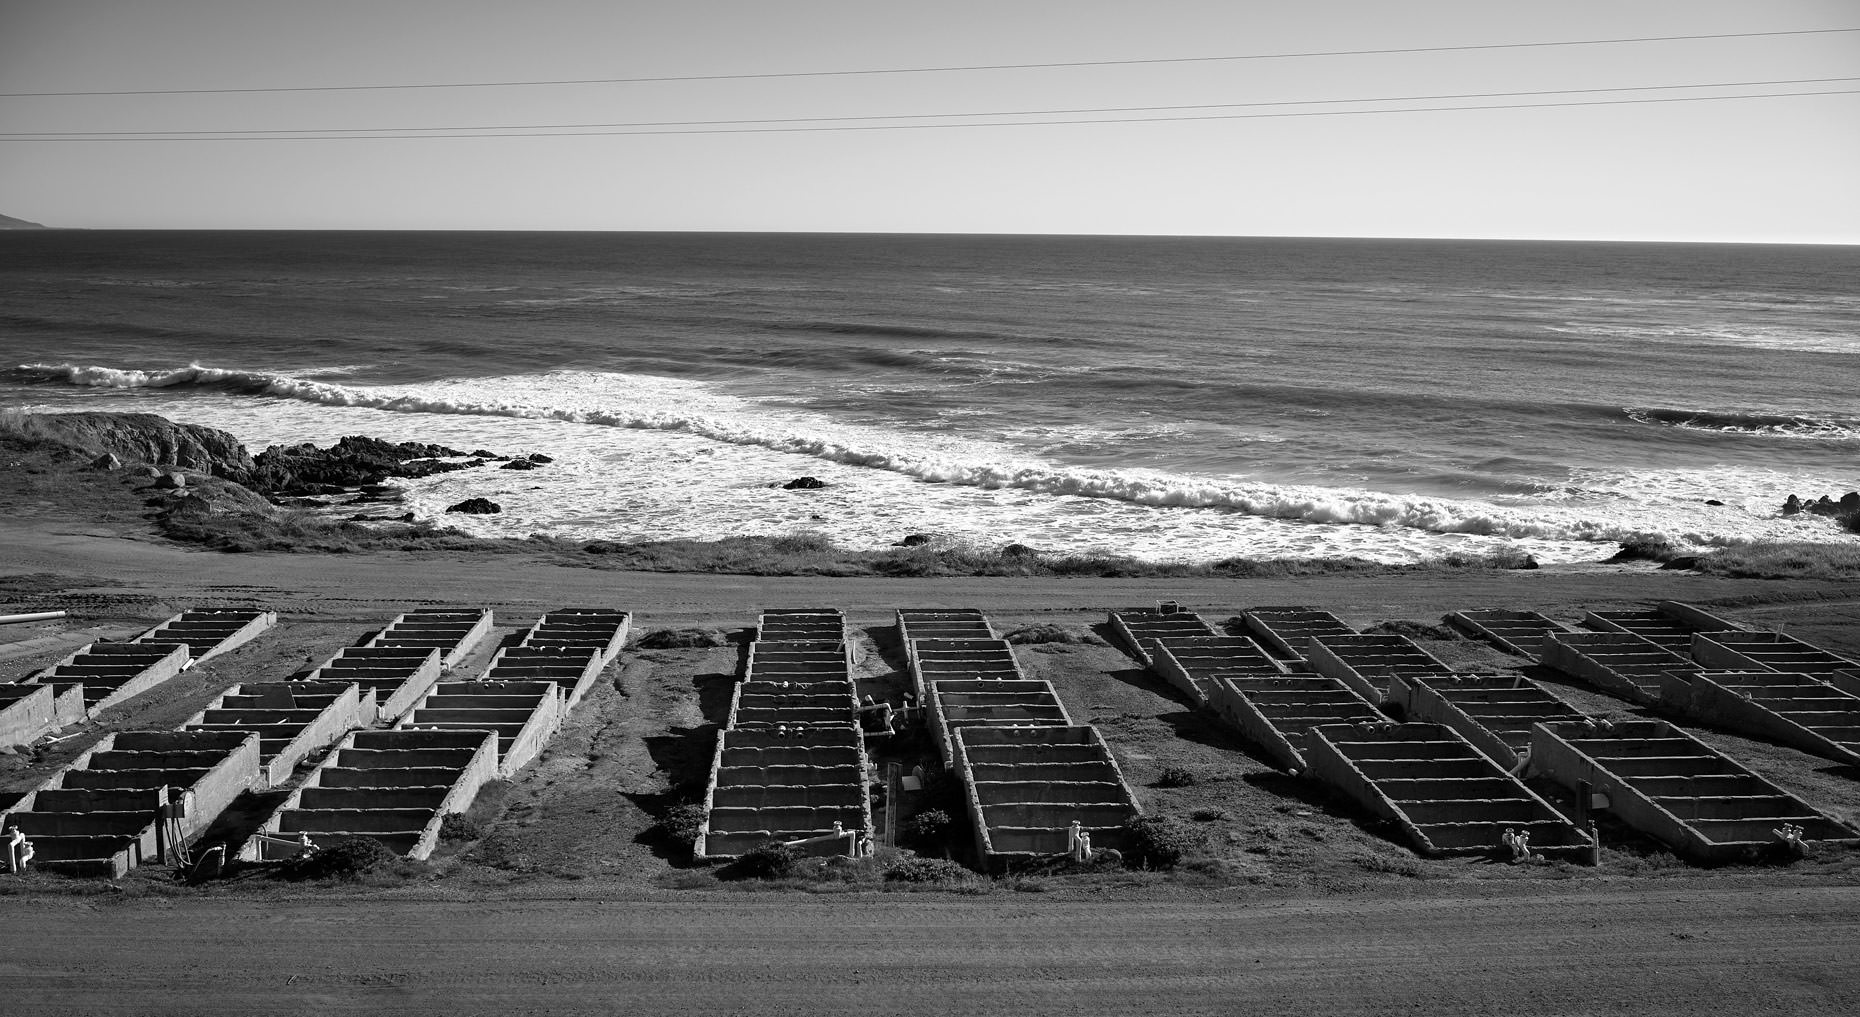 Rows of Unused Abalone Tanks by the Surf